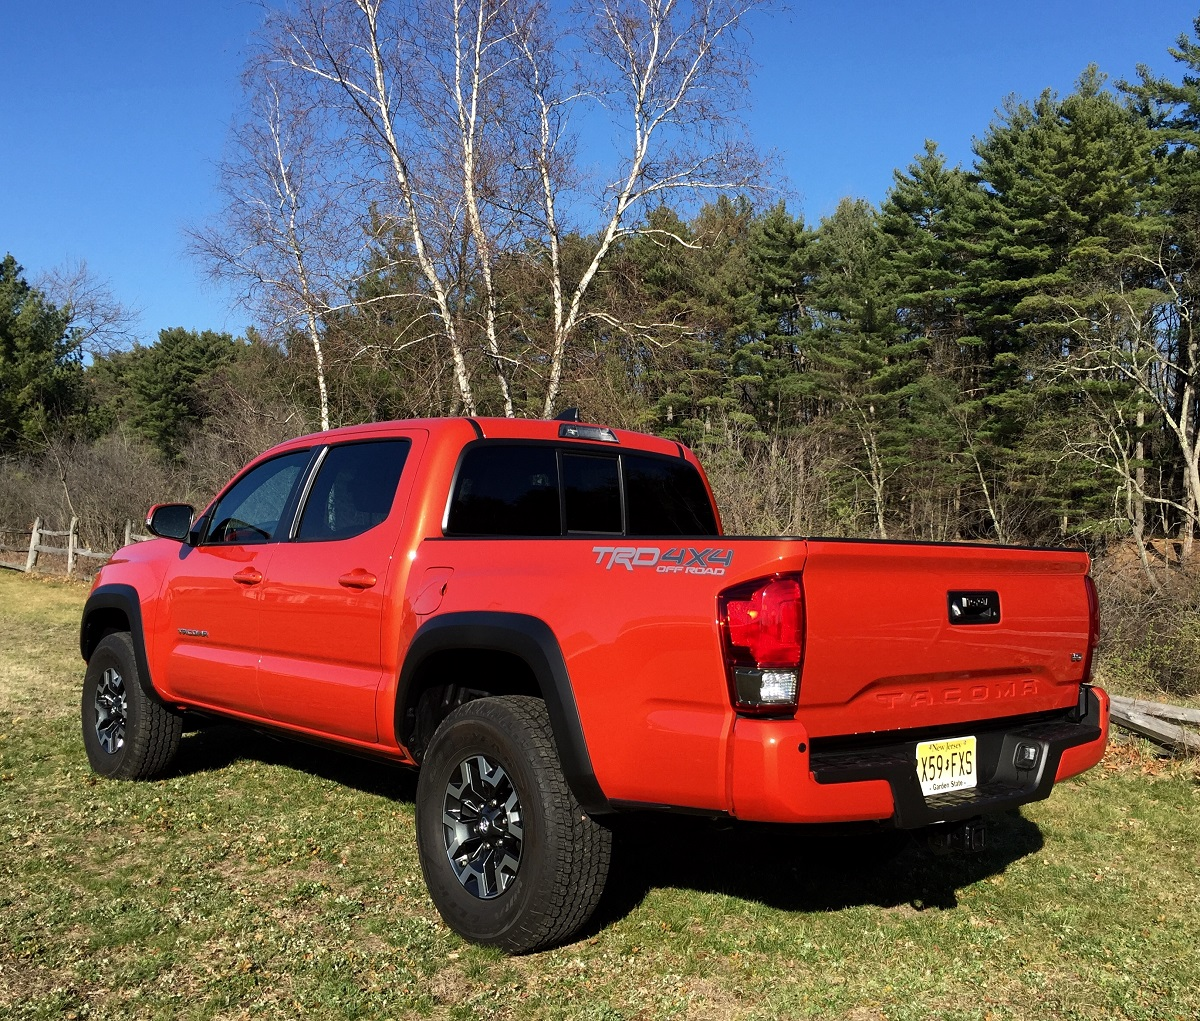 2016 Toyota Tacoma Trd Off Road Rear